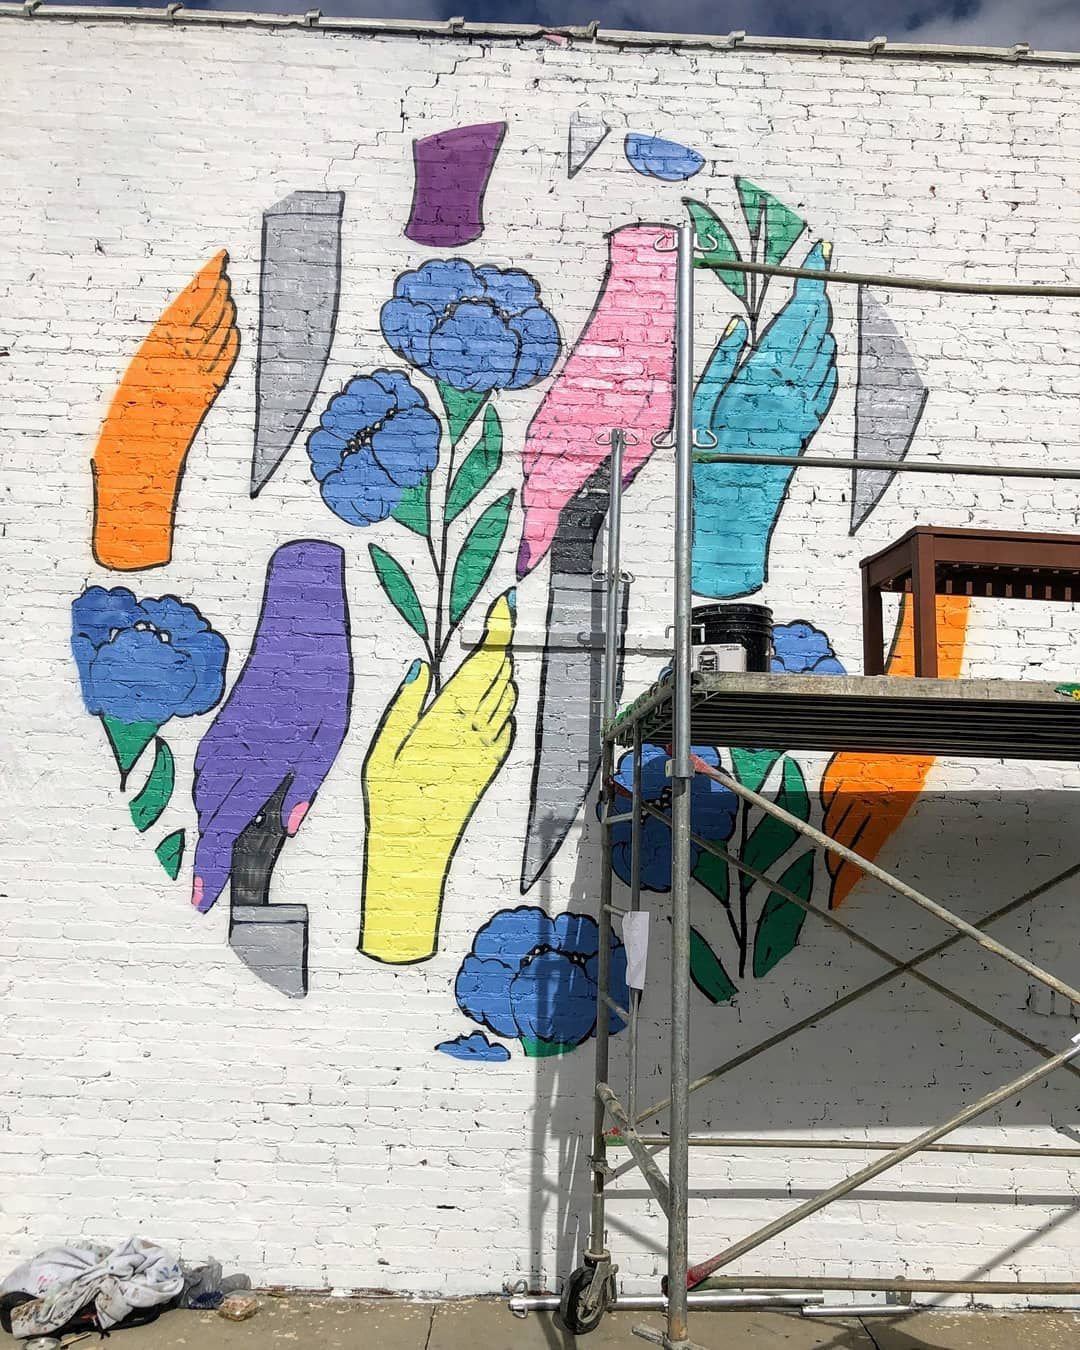 The mural by Kayleen Scott is locate just to the right of where the car entered the building